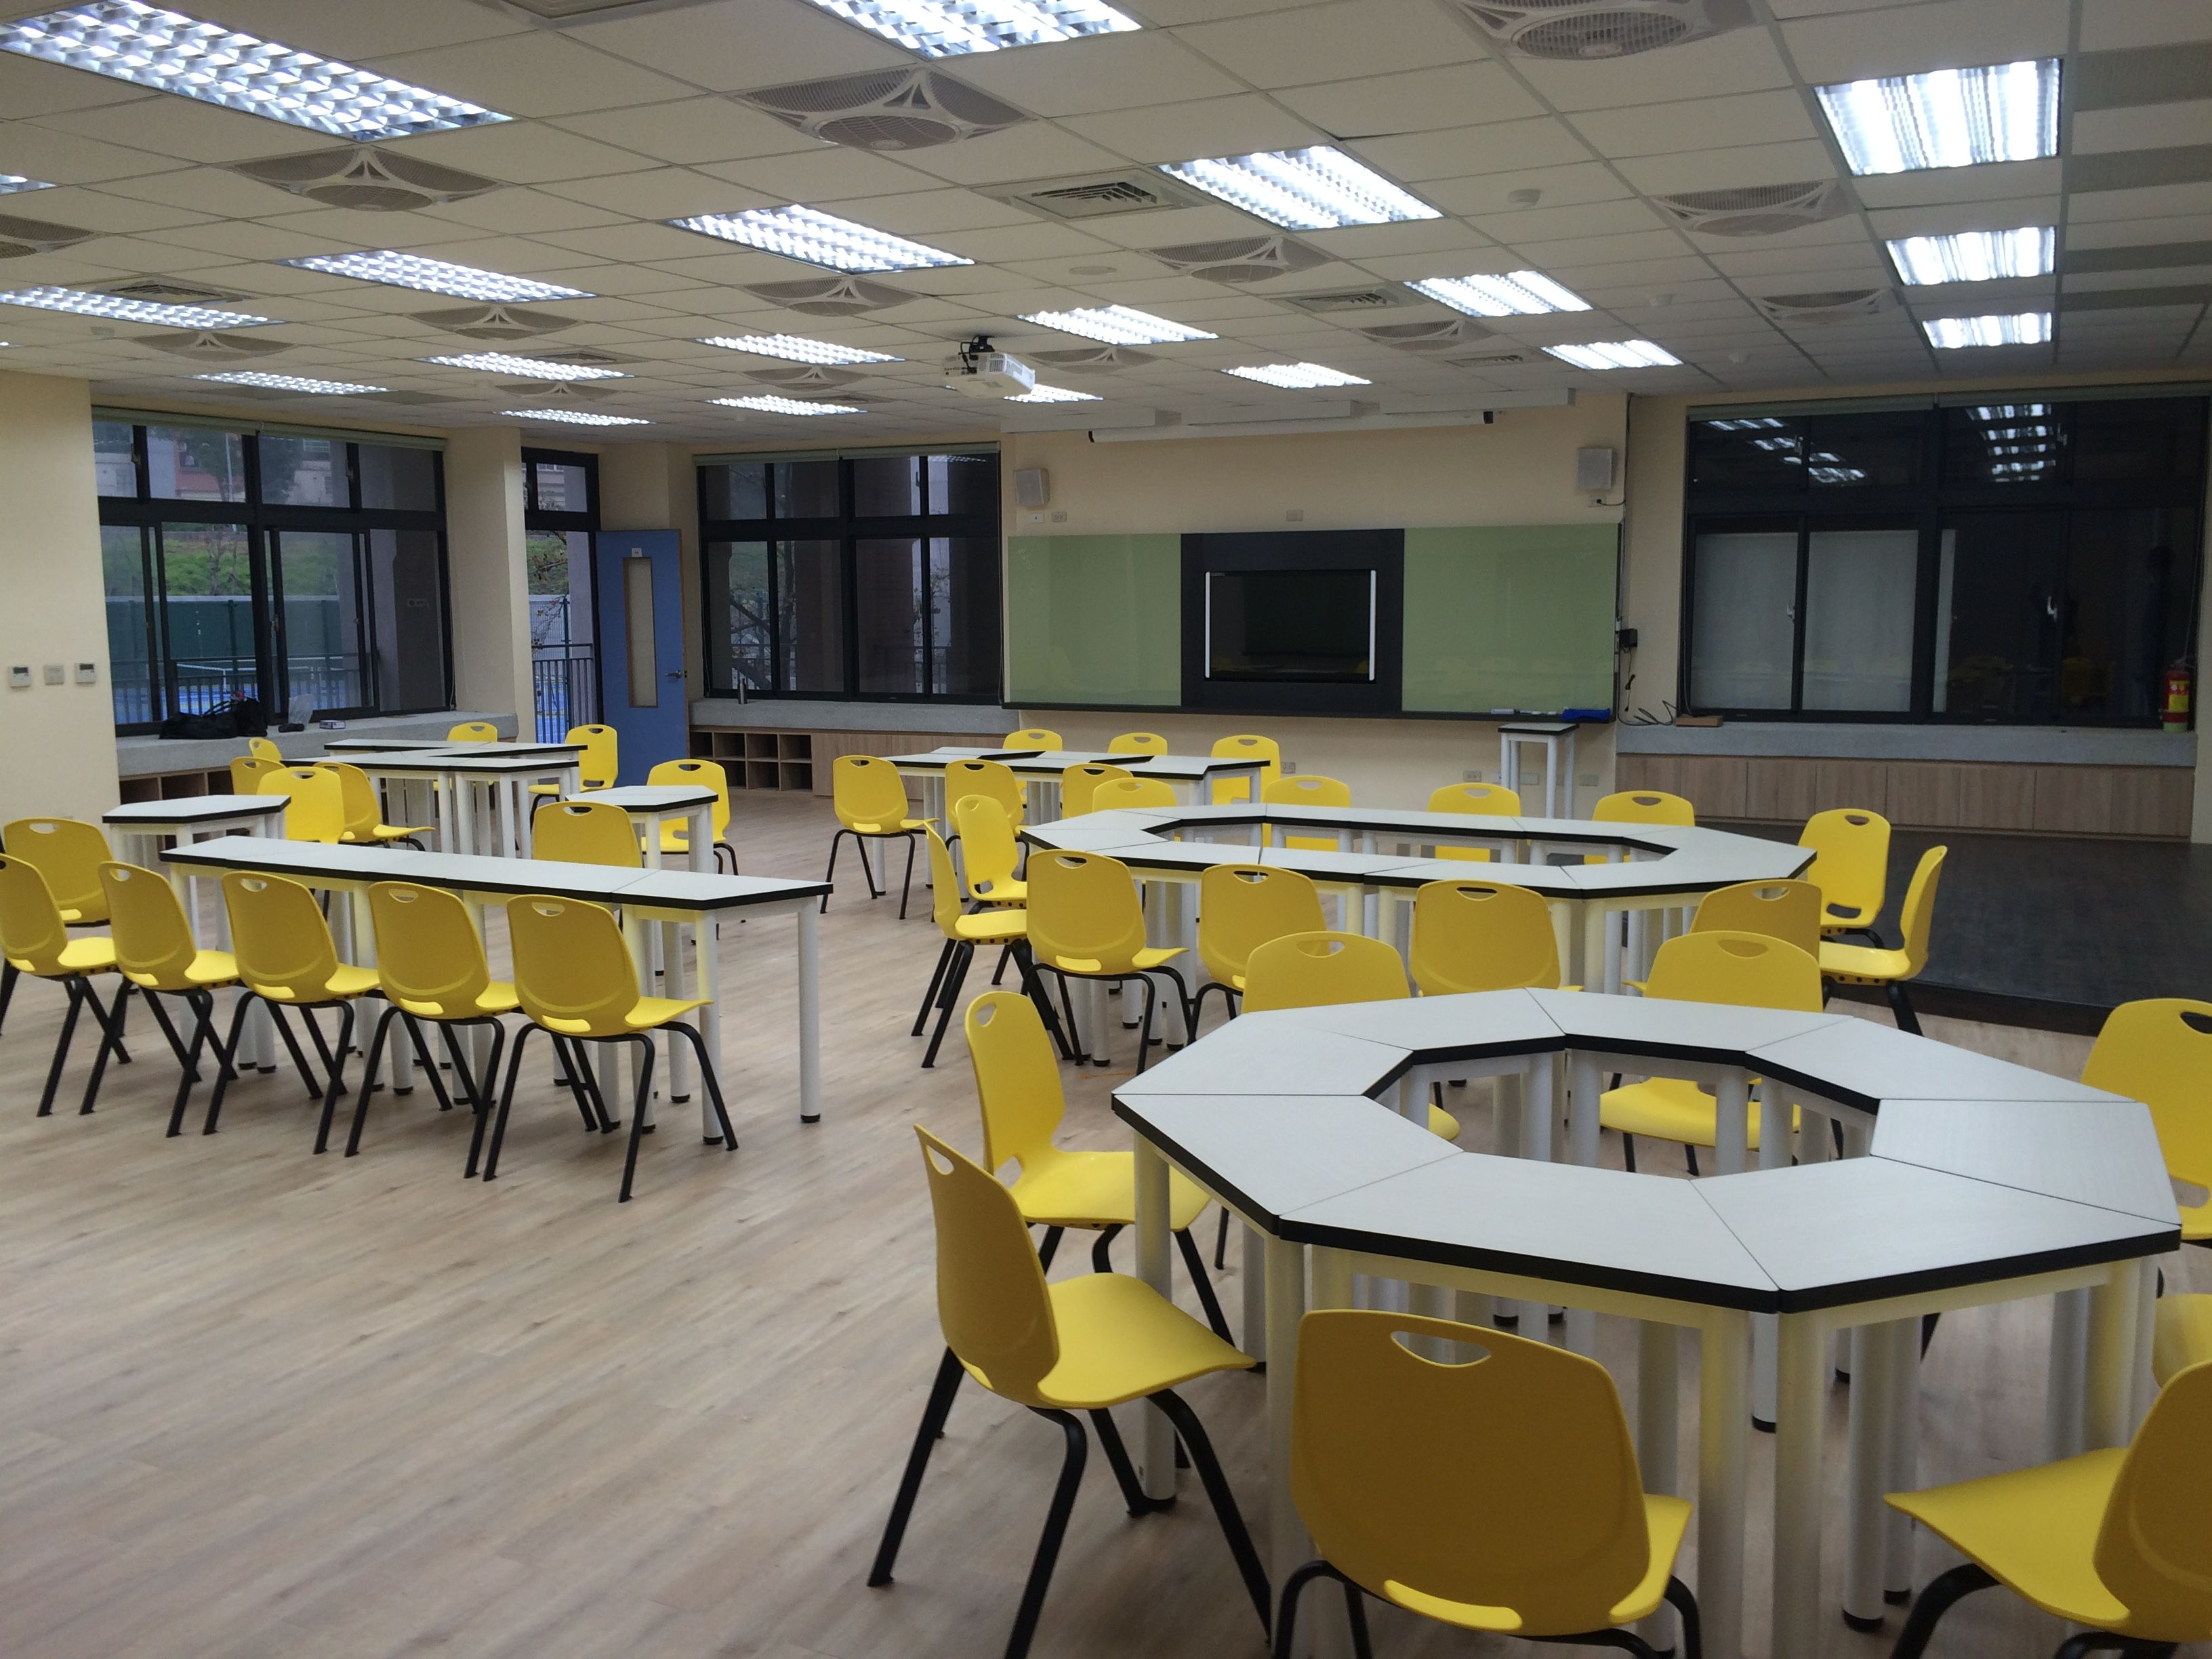 Modular Classroom Seating ~ Pin by 鎮穎 徐 on trapezoid student tables modular seminar